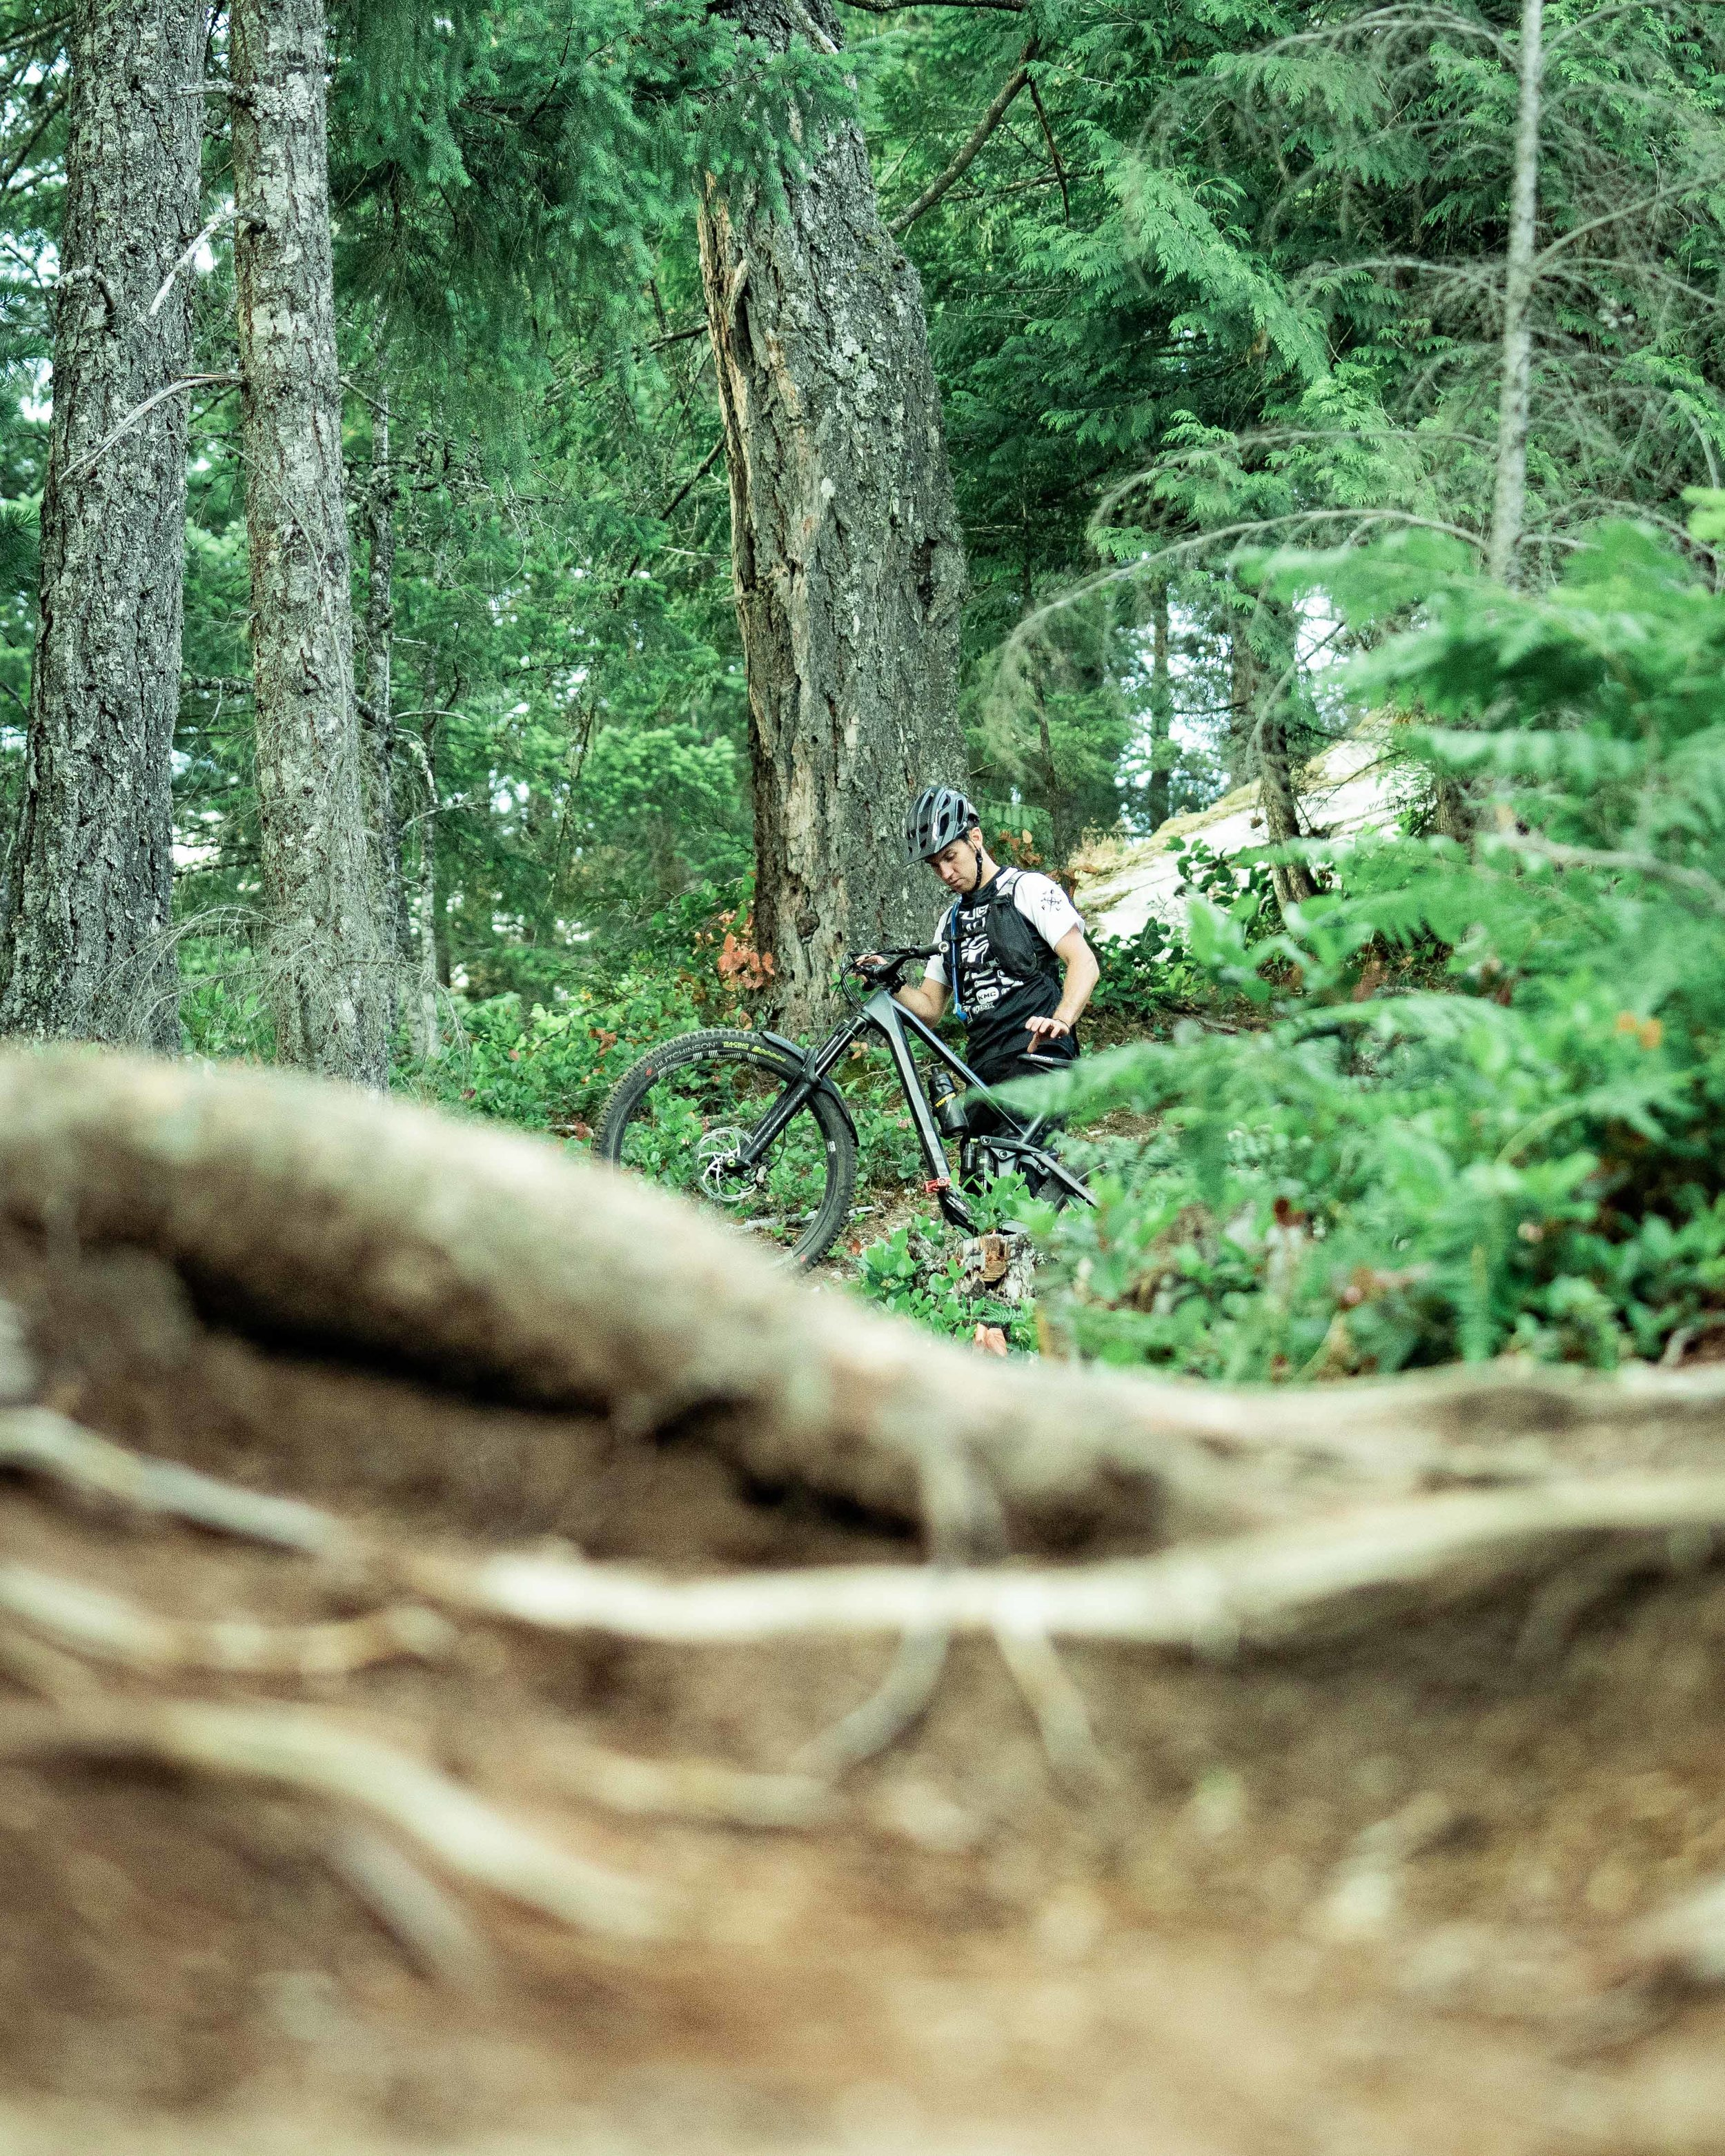 chasewhite-remymetailler-squamish-42.jpg